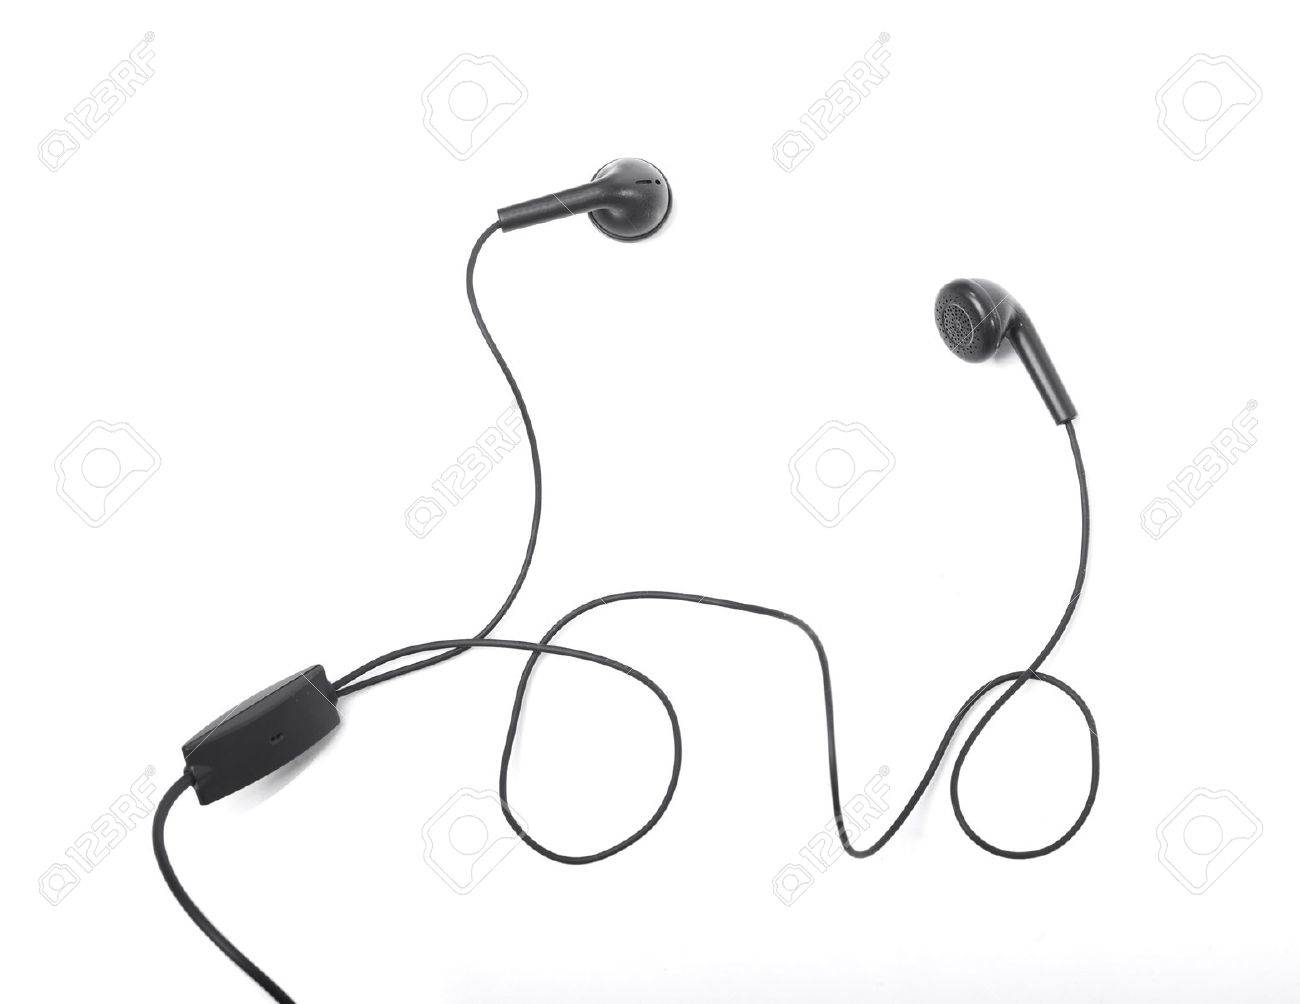 1300x1004 Modern Portable Audio Earphones Isolated On A White Background